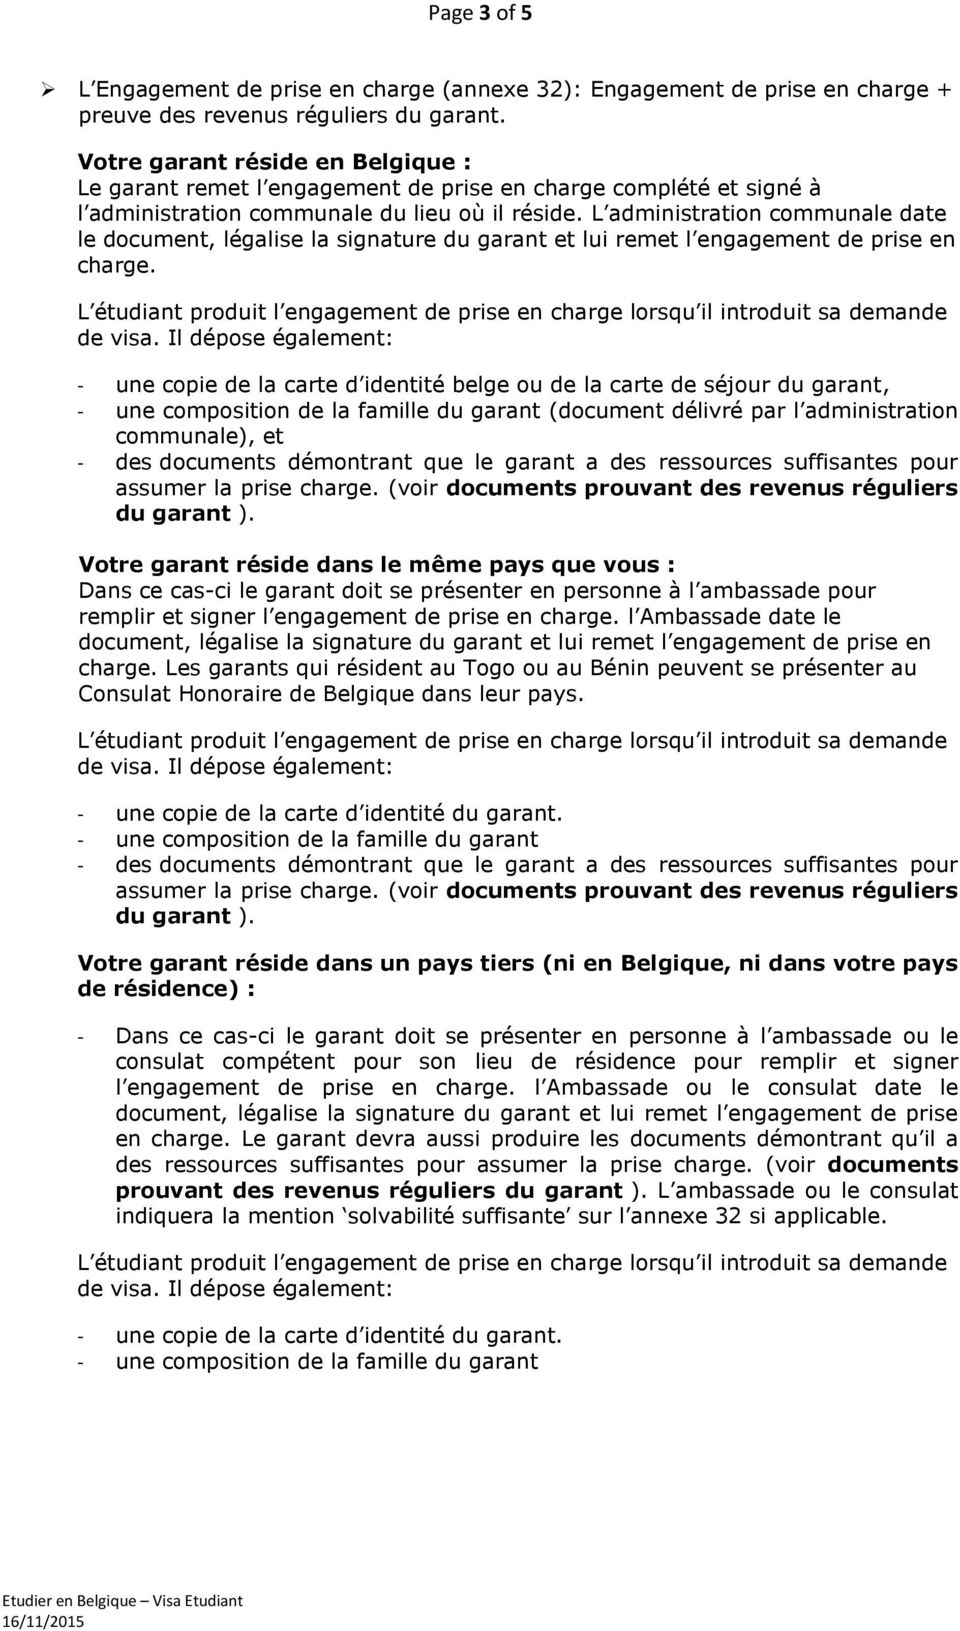 L administration communale date le document, légalise la signature du garant et lui remet l engagement de prise en charge.